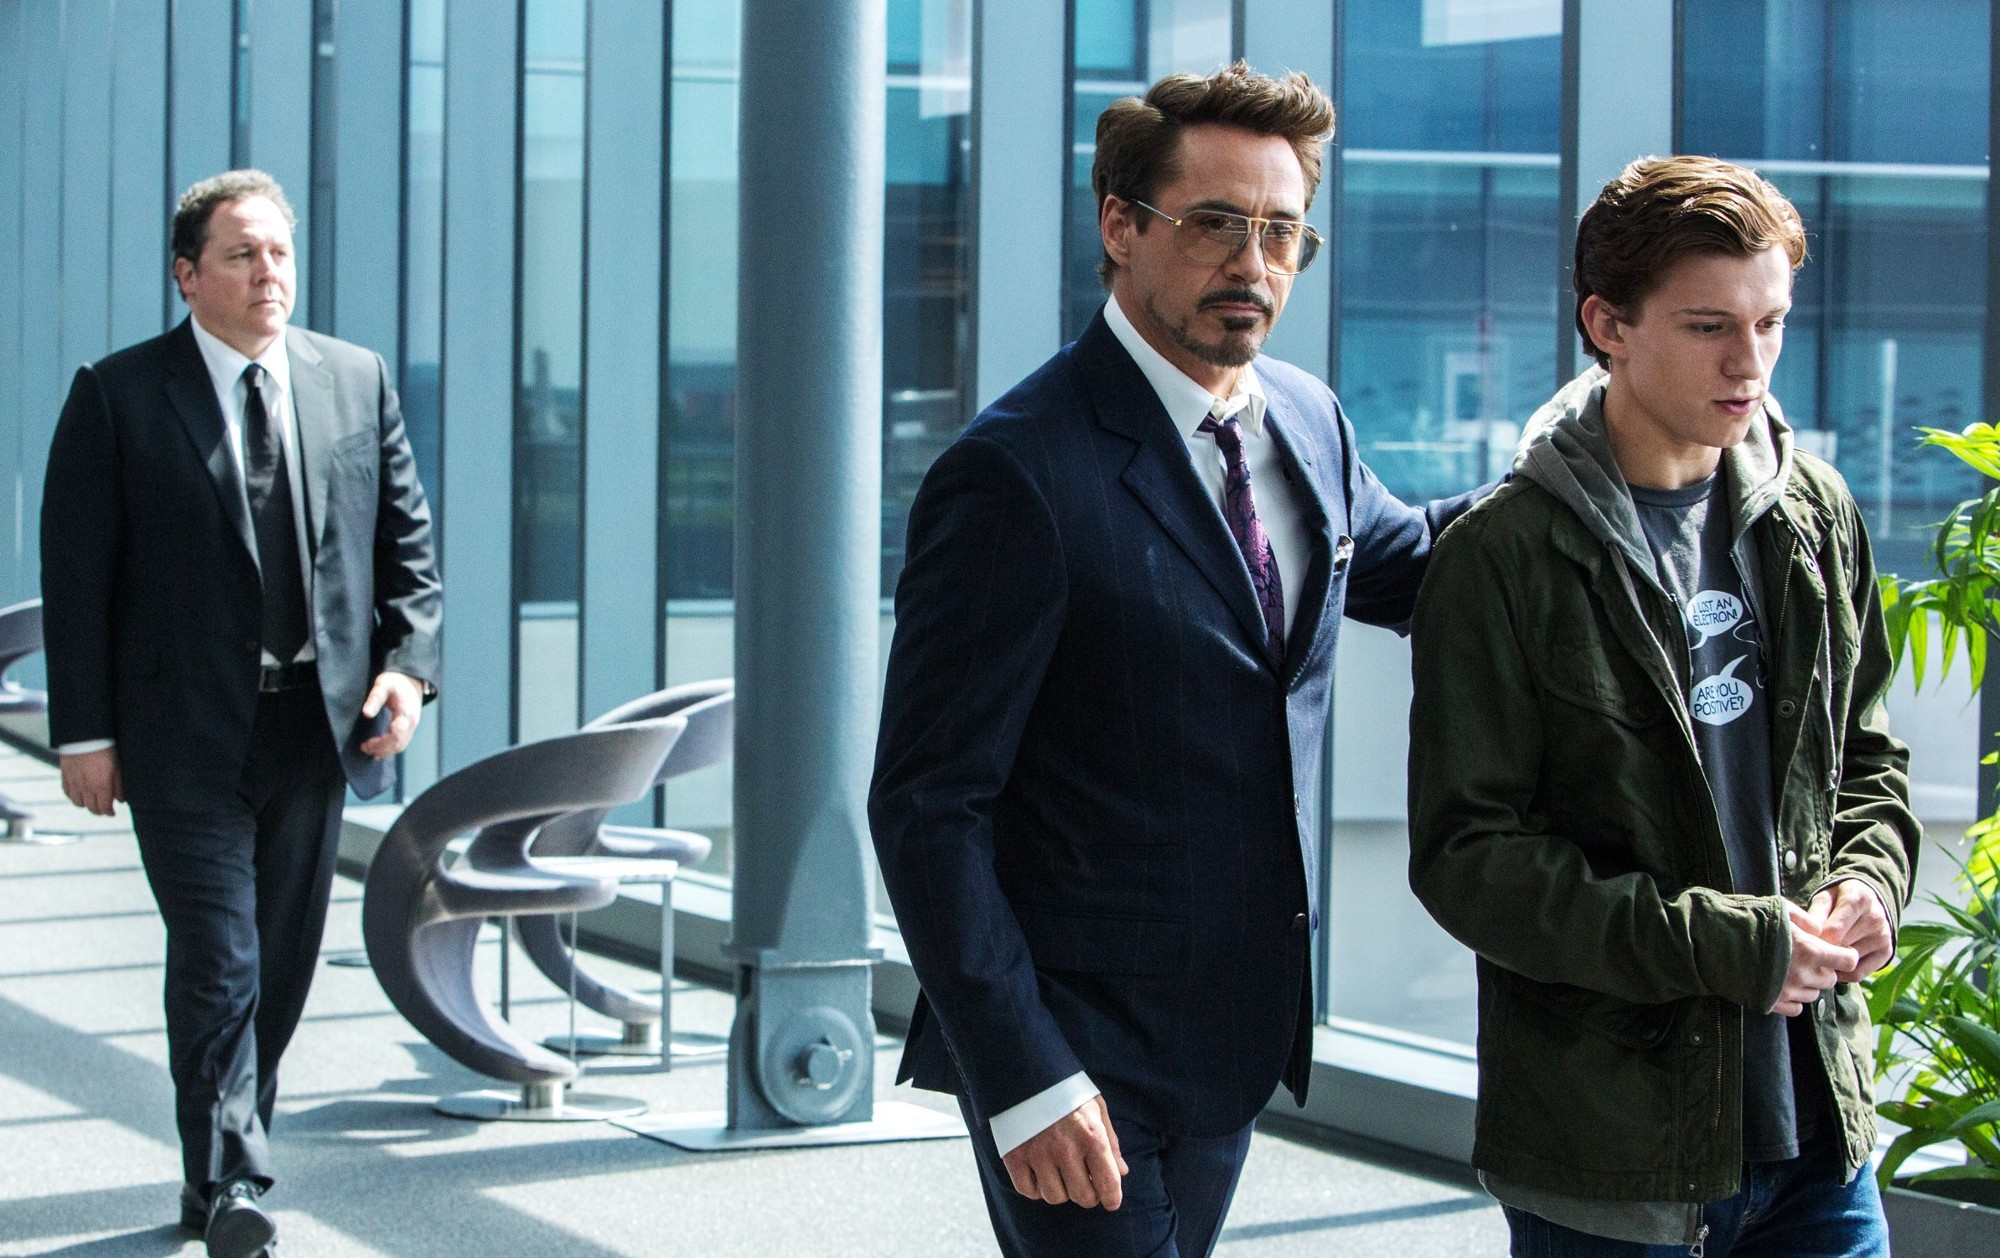 Aunt May and Happy Hogan Might Romance In Spider-Man: Far From Home